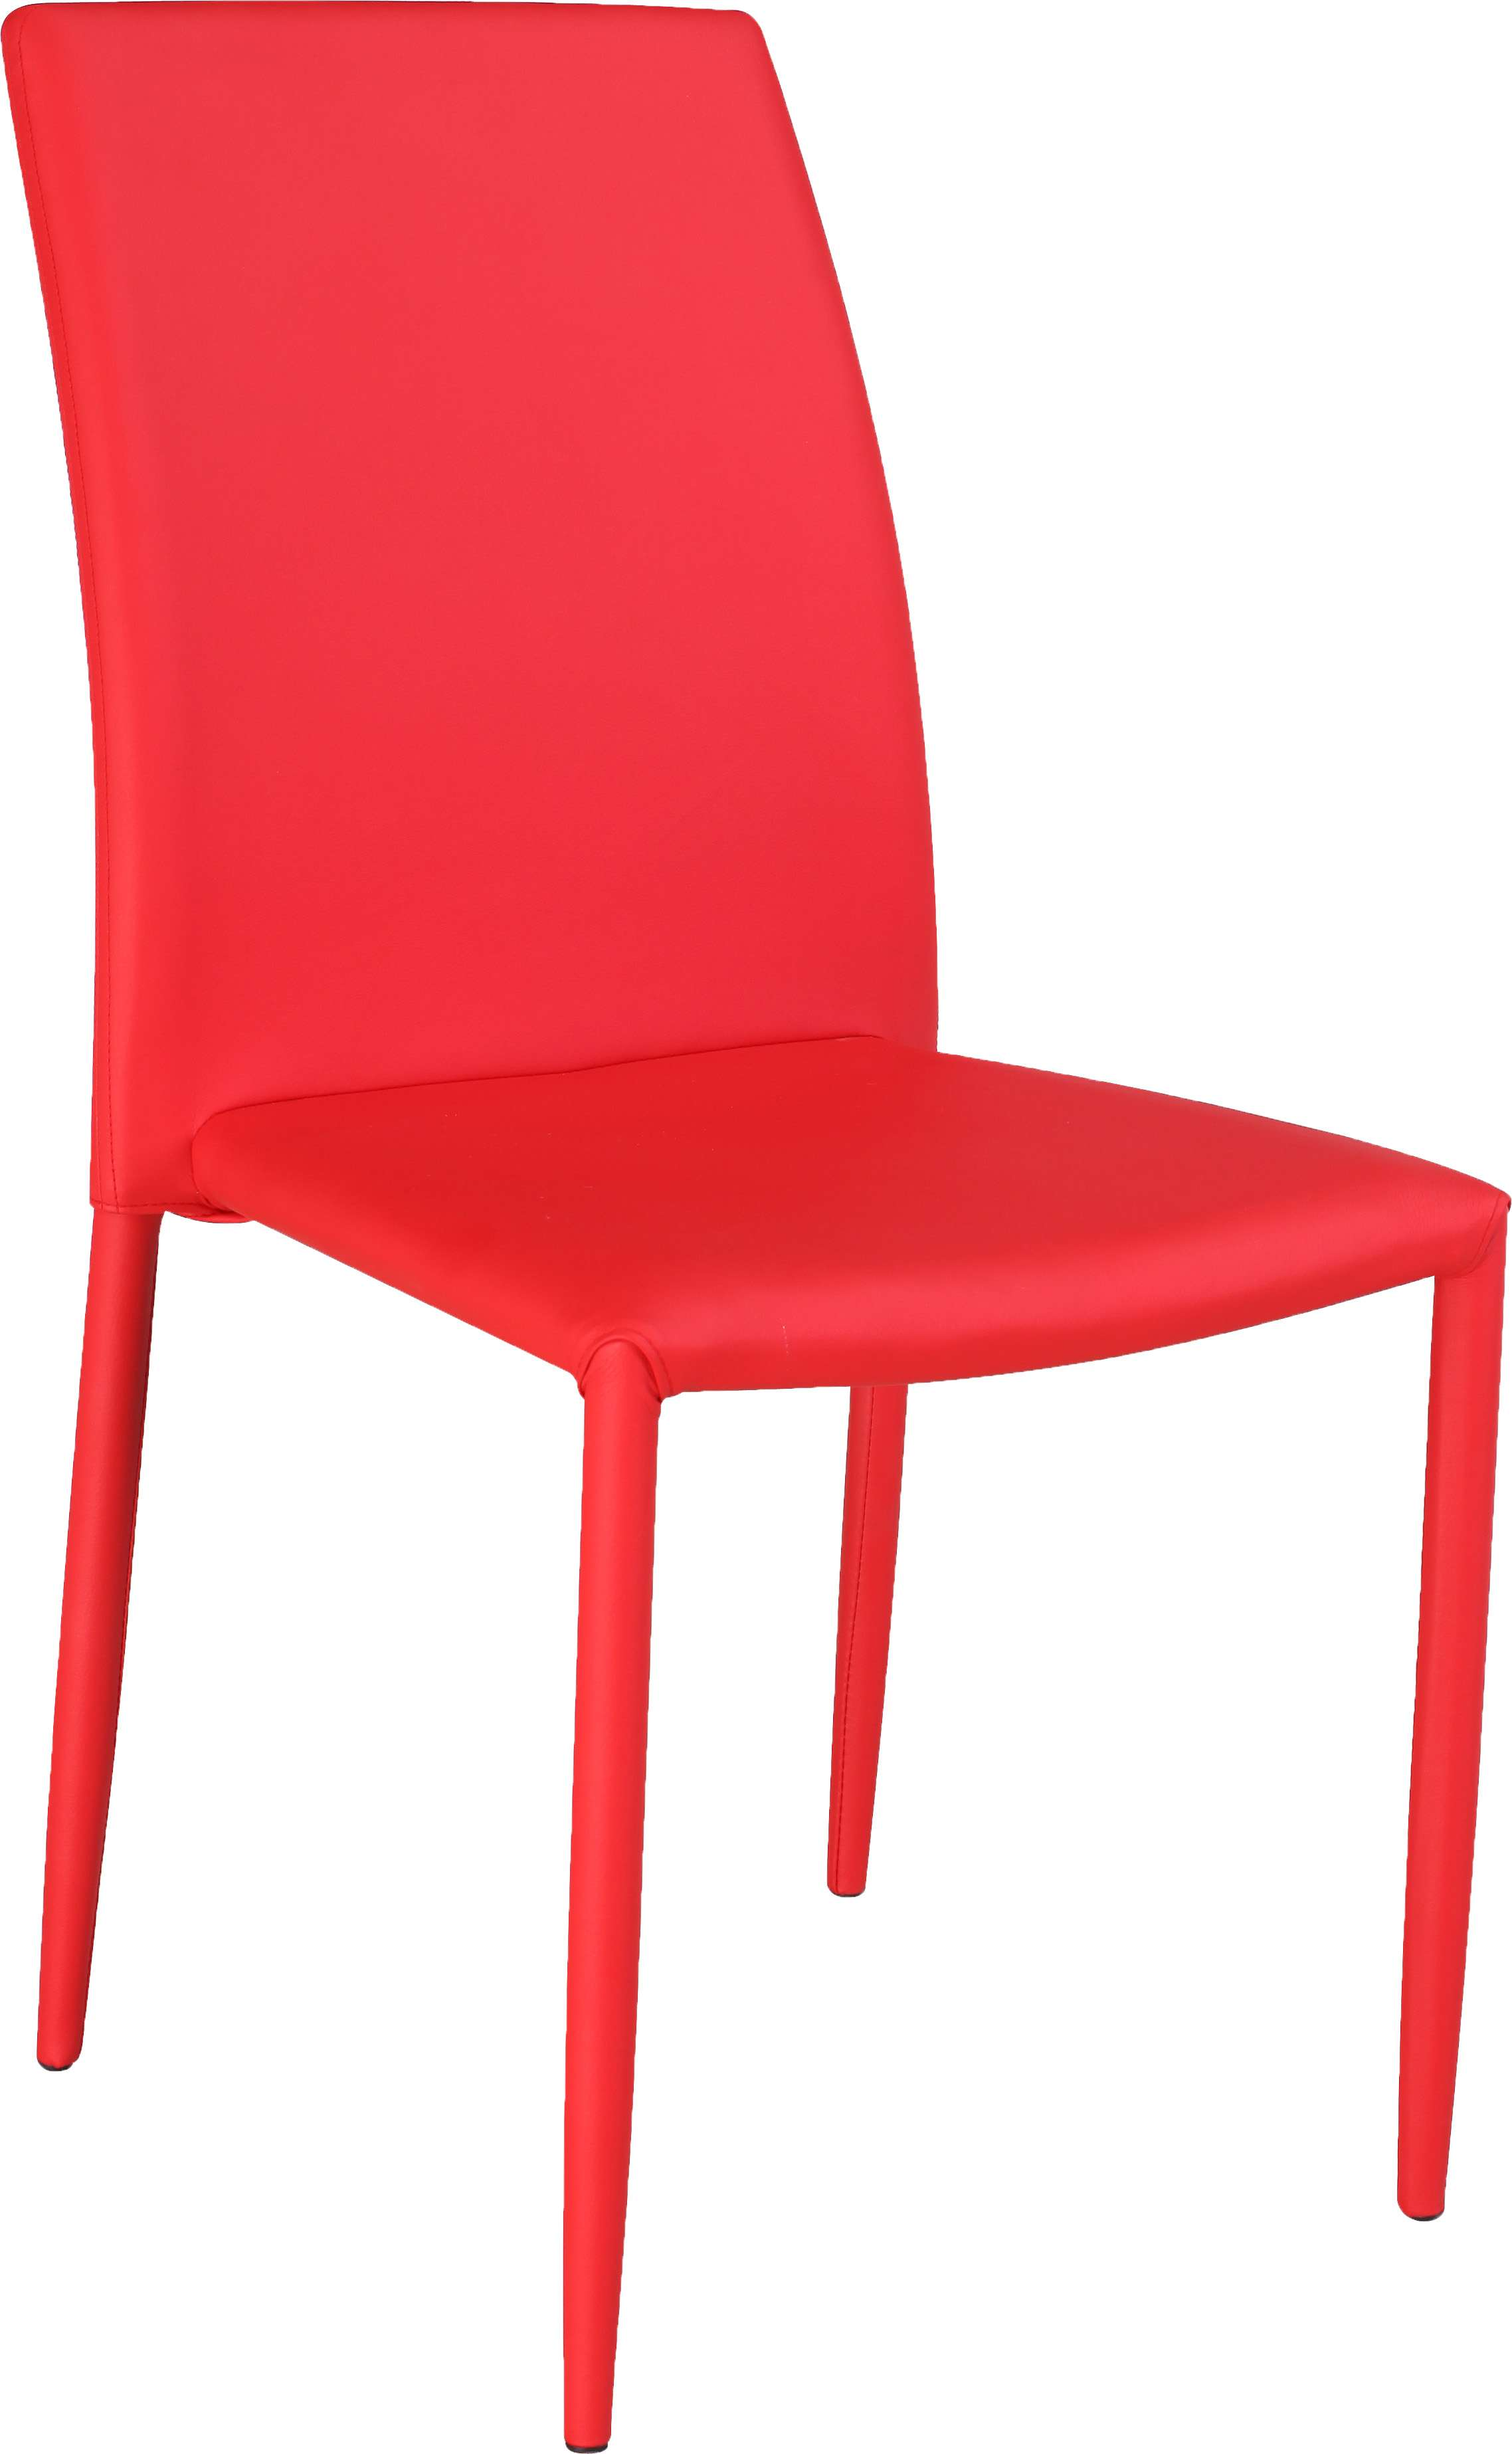 Fiona Fully Upholstered Stackable Side Chair in Red - Set of 4